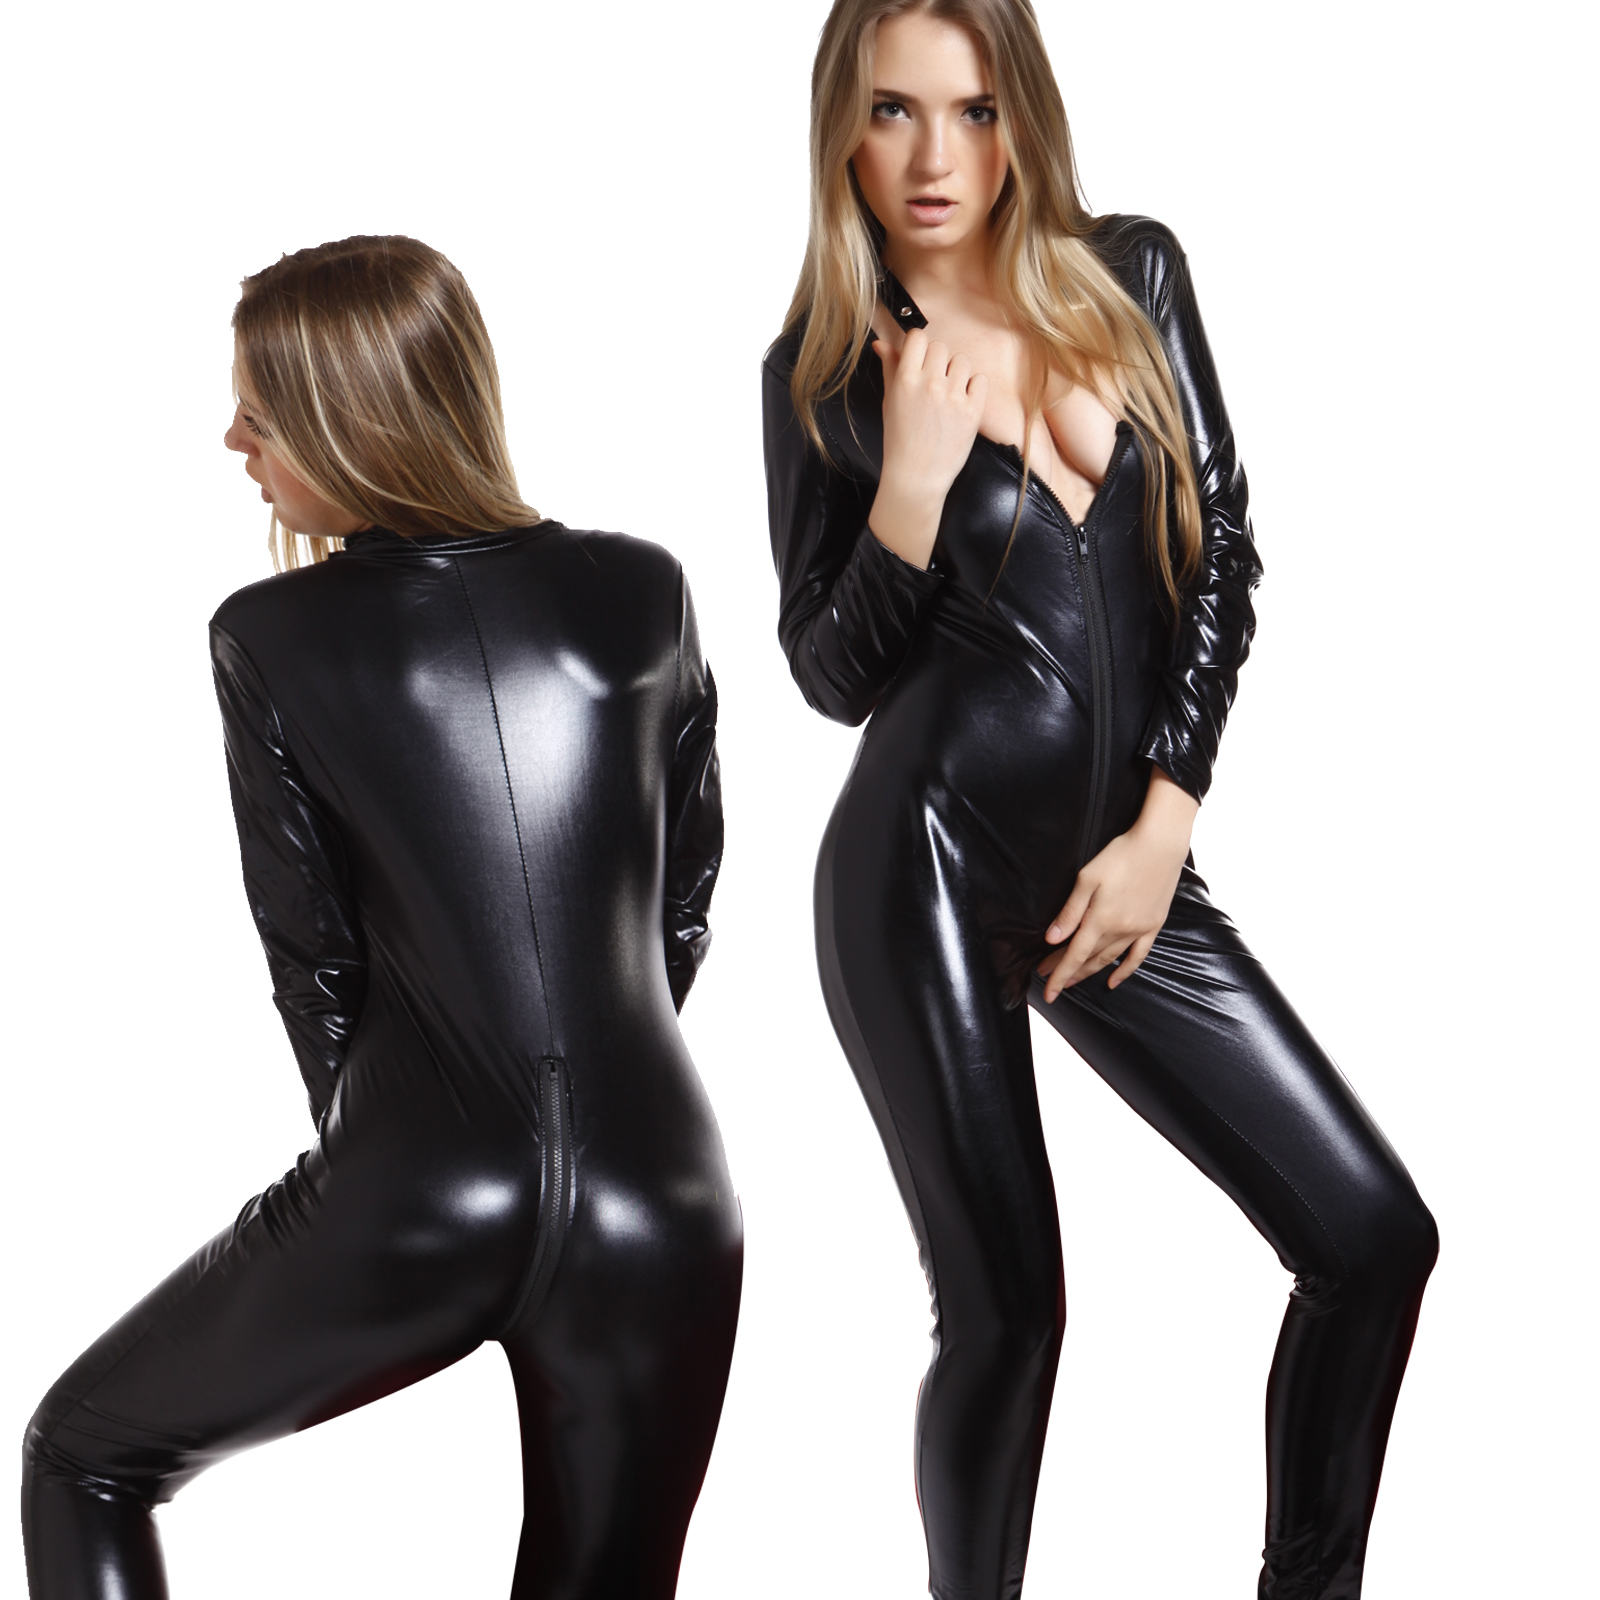 e8824a5367c Details about Catwomen Jumpsuit PU Leather Catsuit Costume Party Outfit  Dress Cosplay Bodysuit